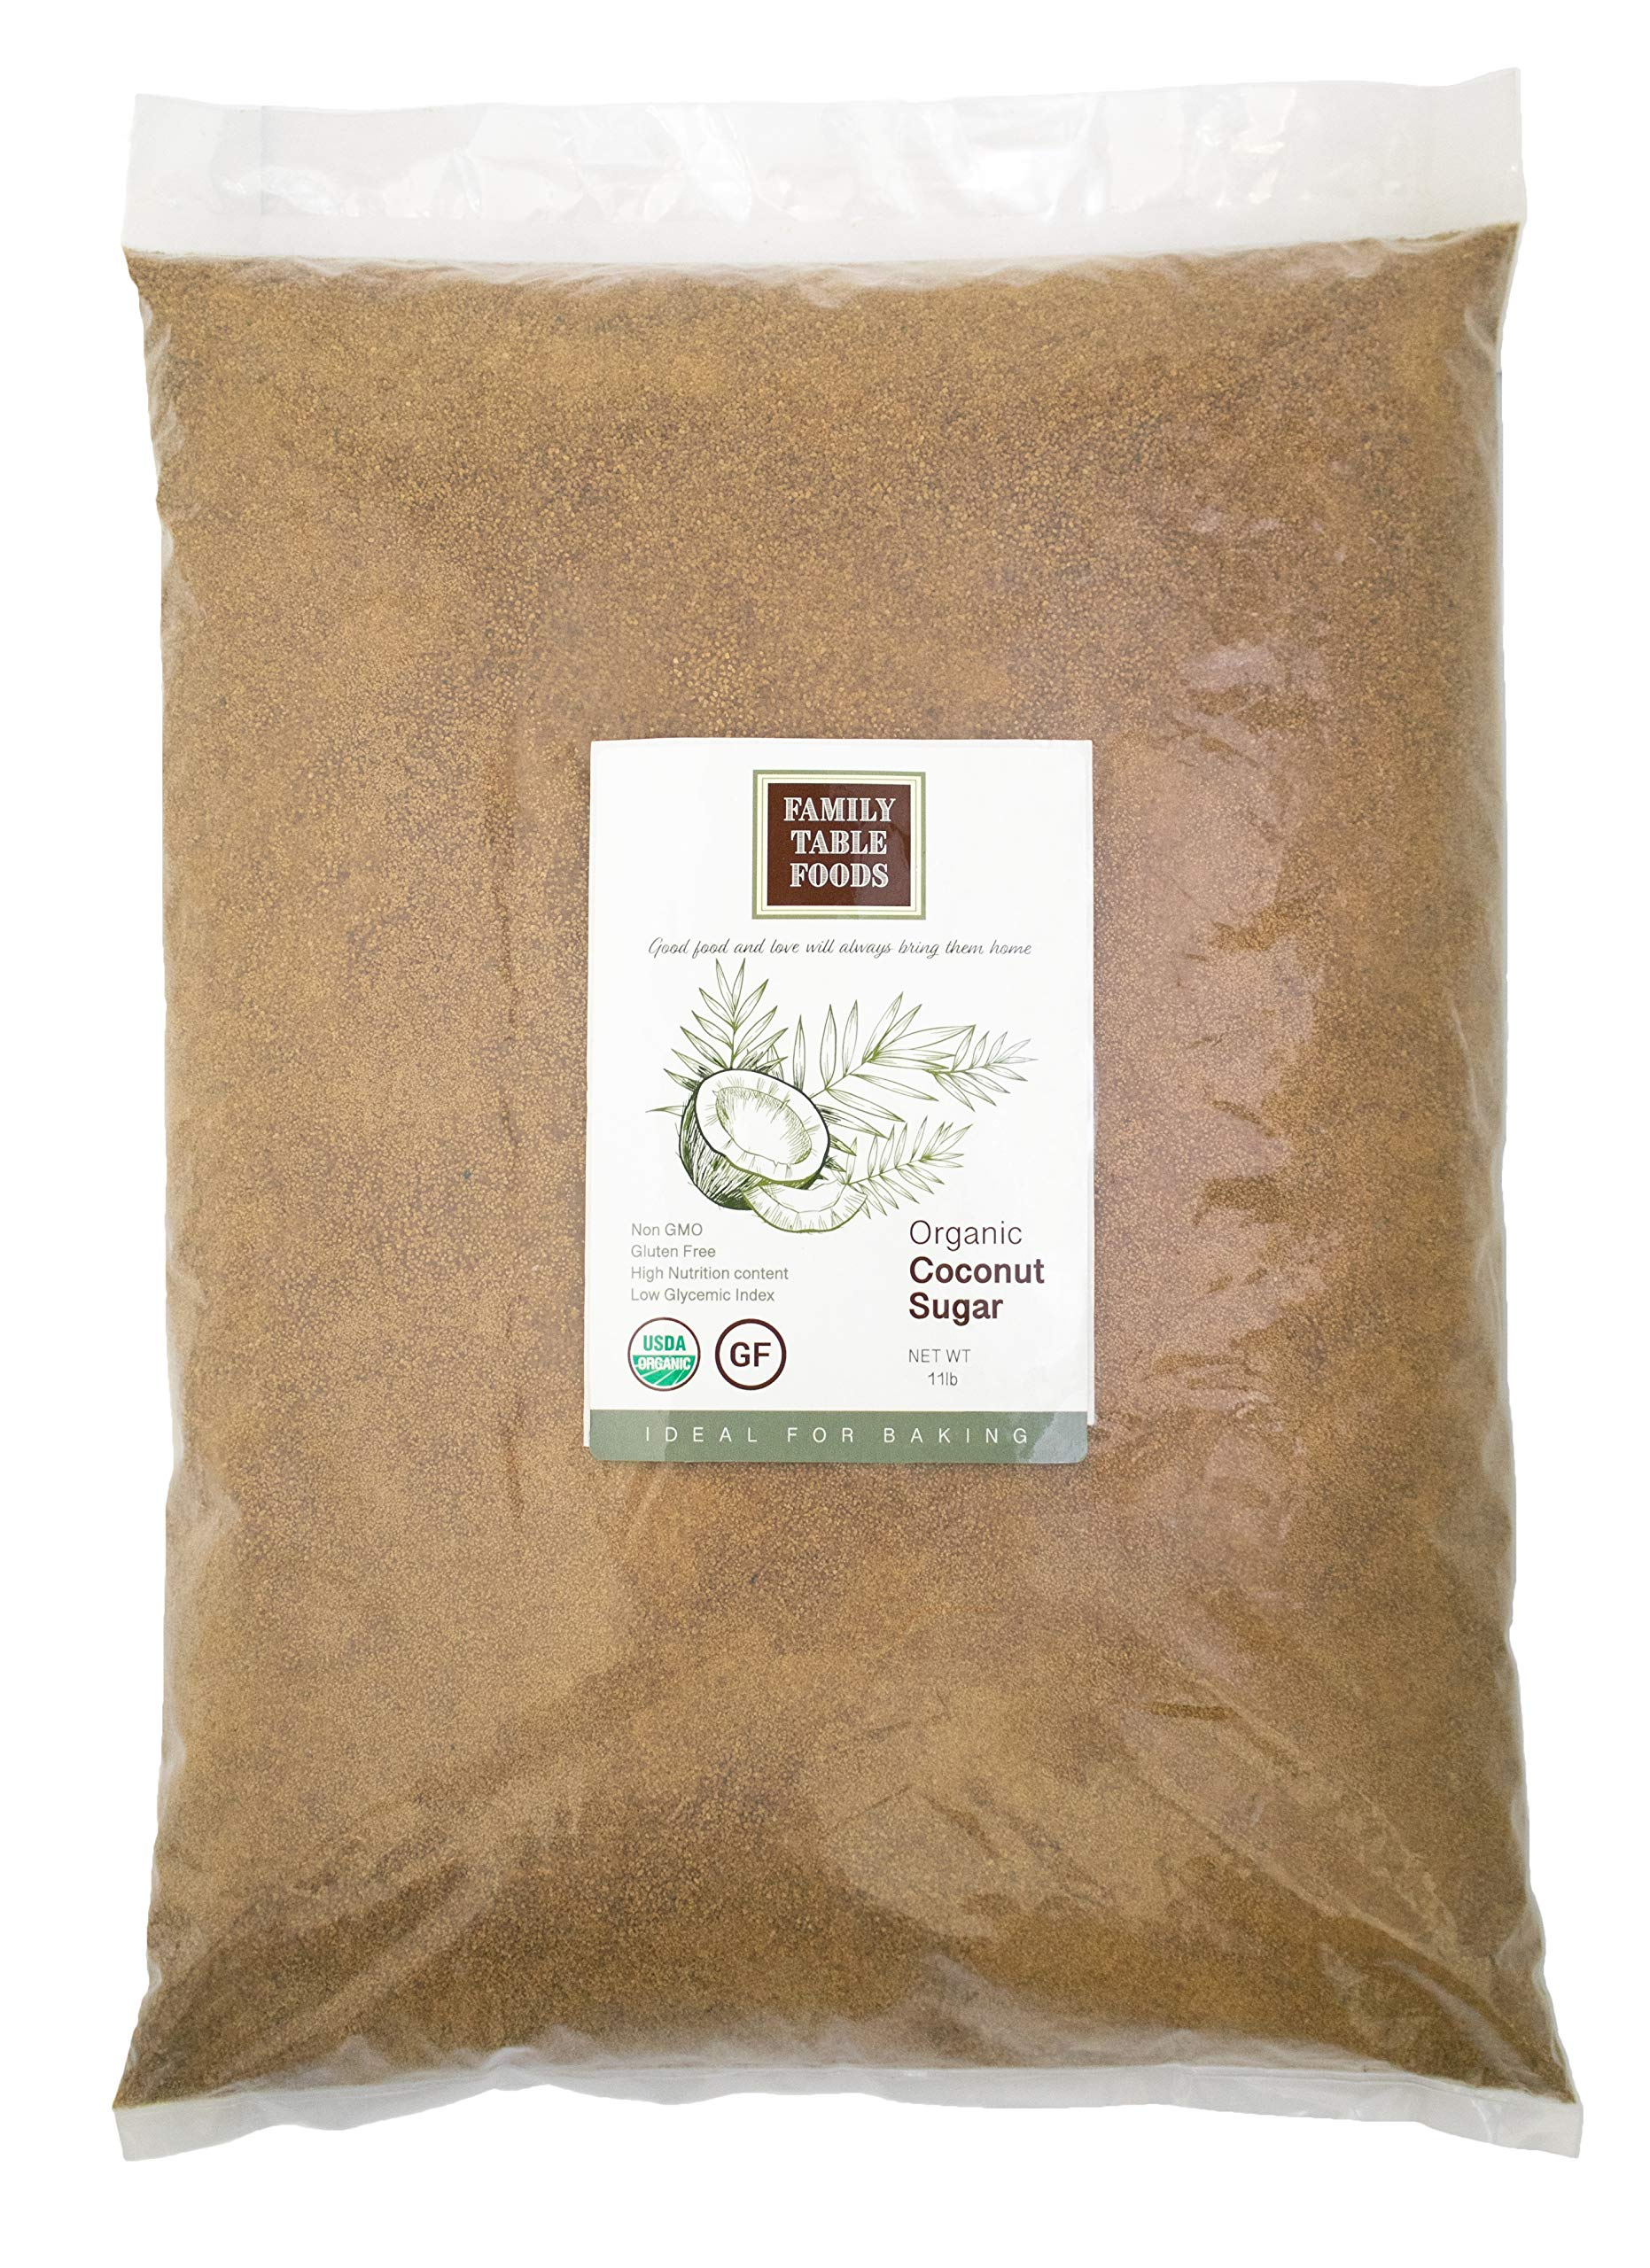 Family Table Foods Organic Coconut Sugar, 11 Pound Bag